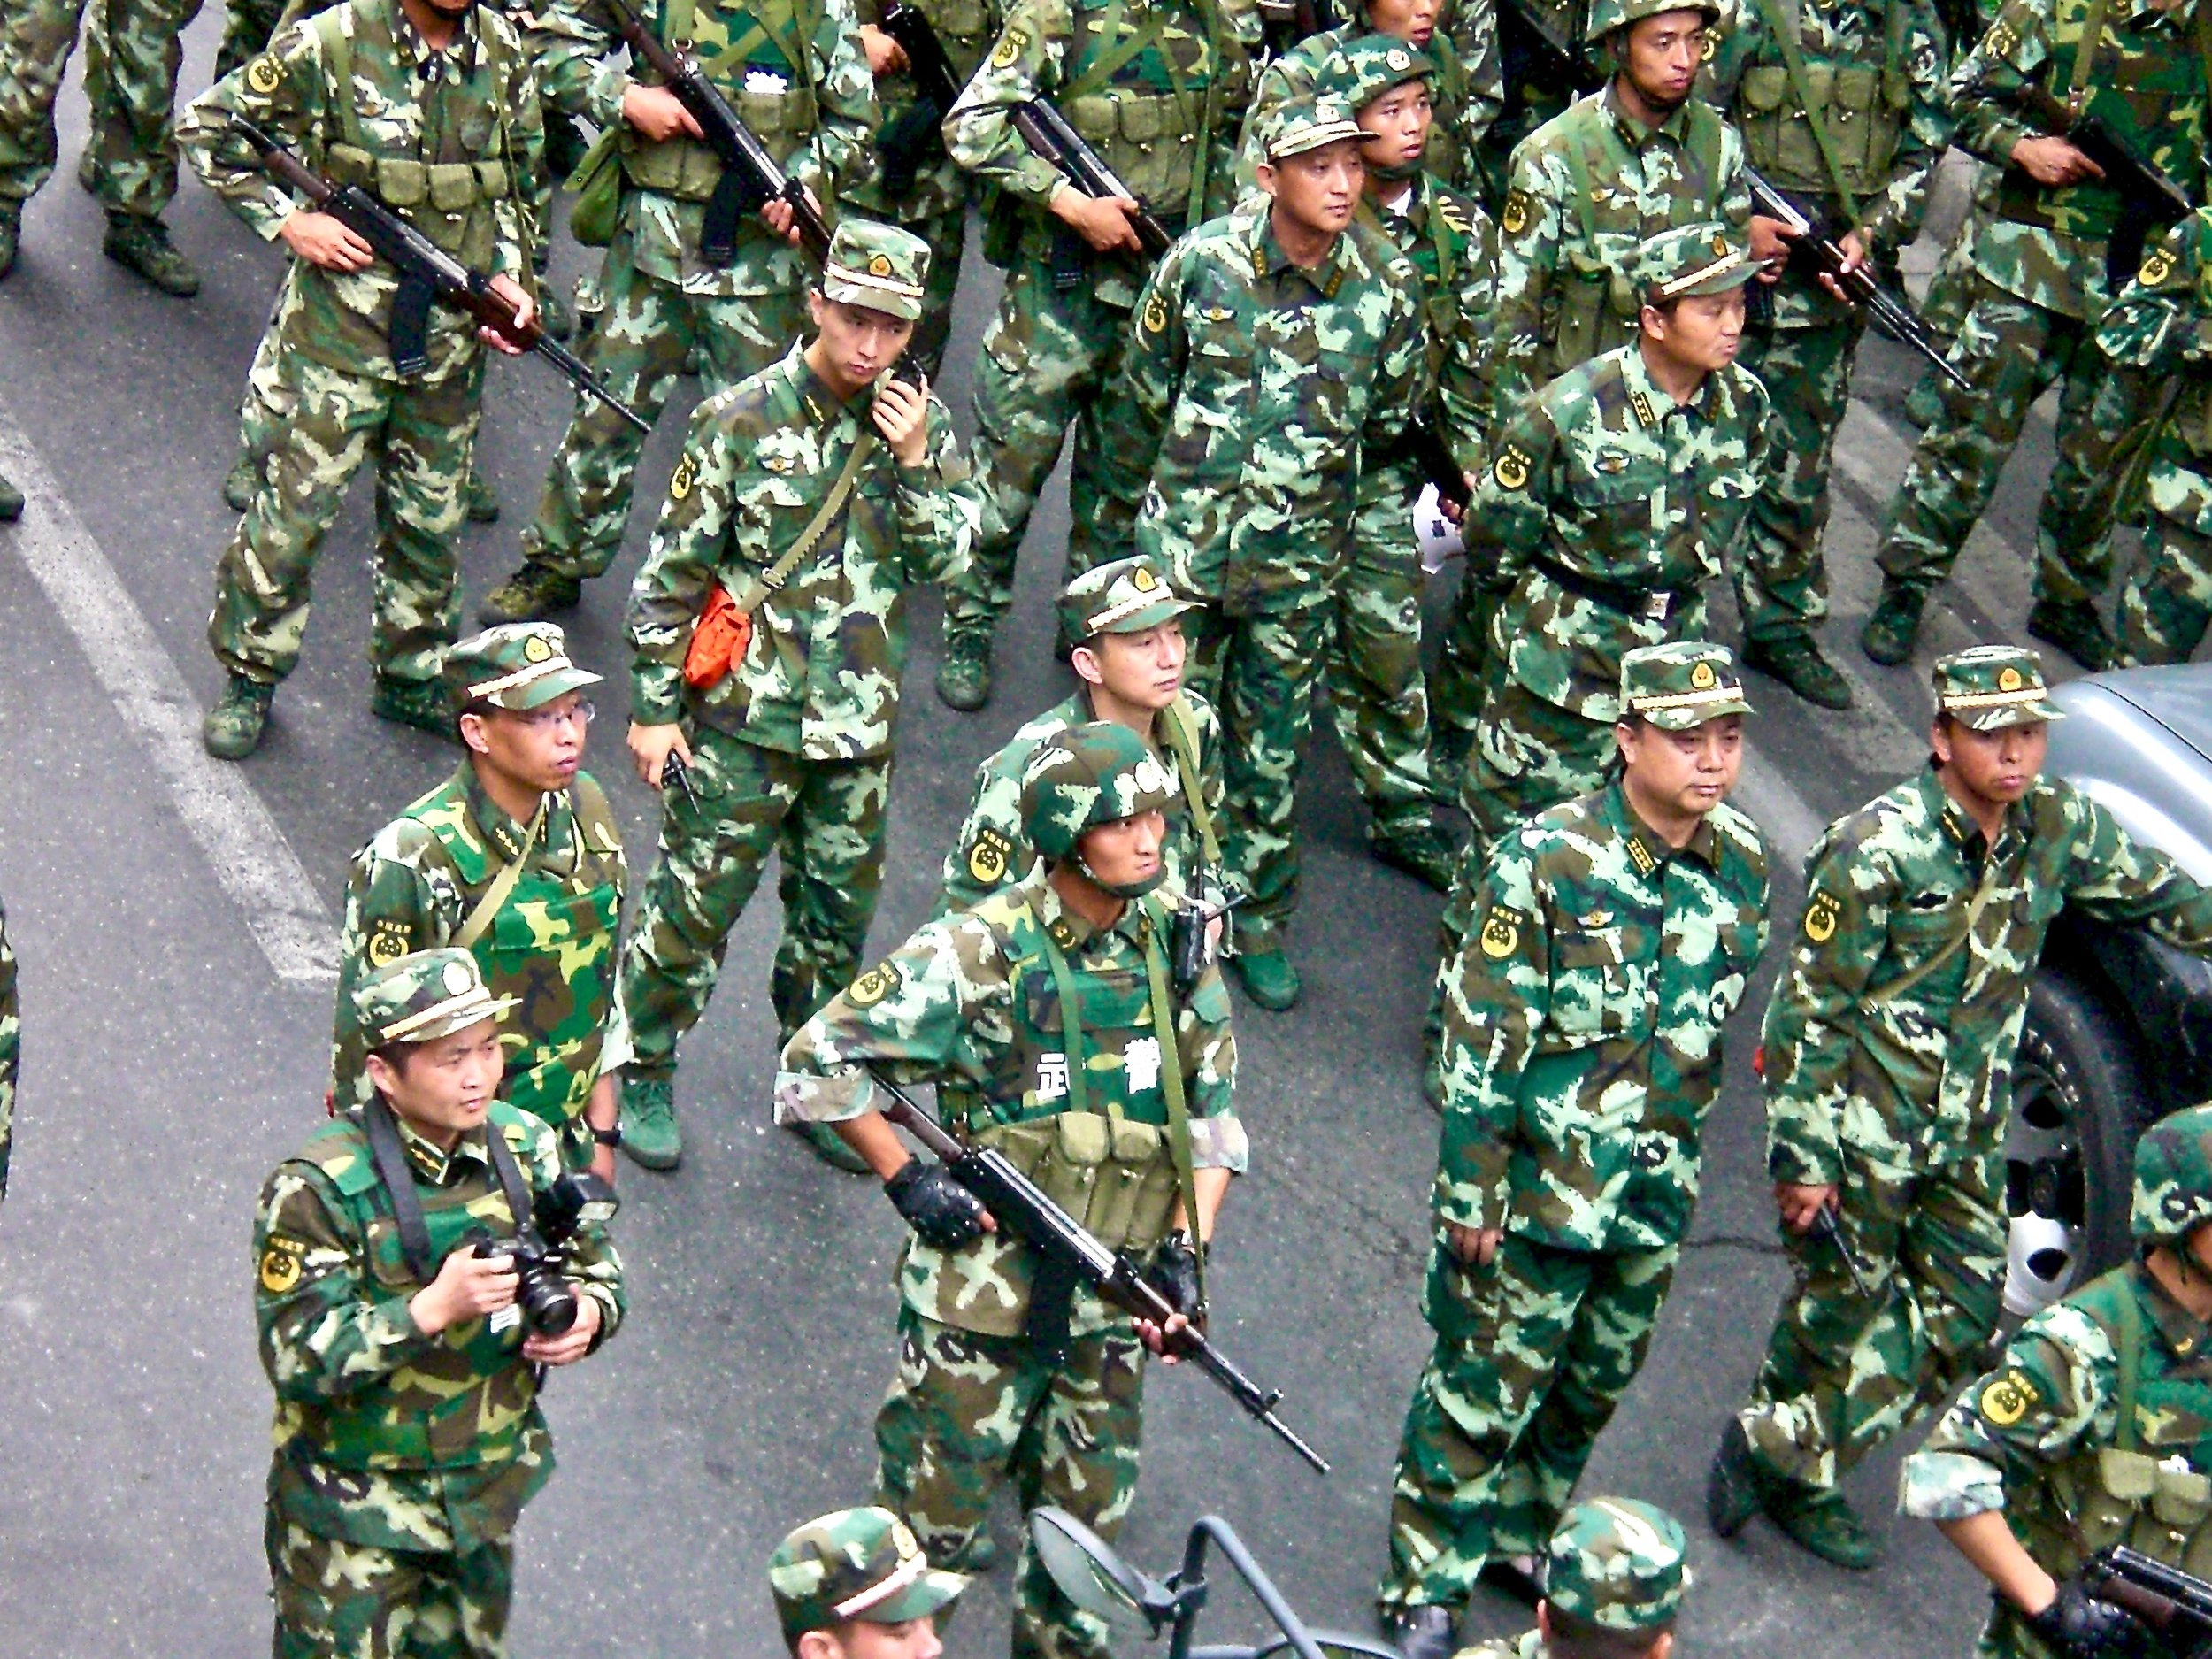 Chinese soldiers in the streets of Urumqi, Xinjiang, after deadly ethnic riots in 2009. (C) Remko Tanis